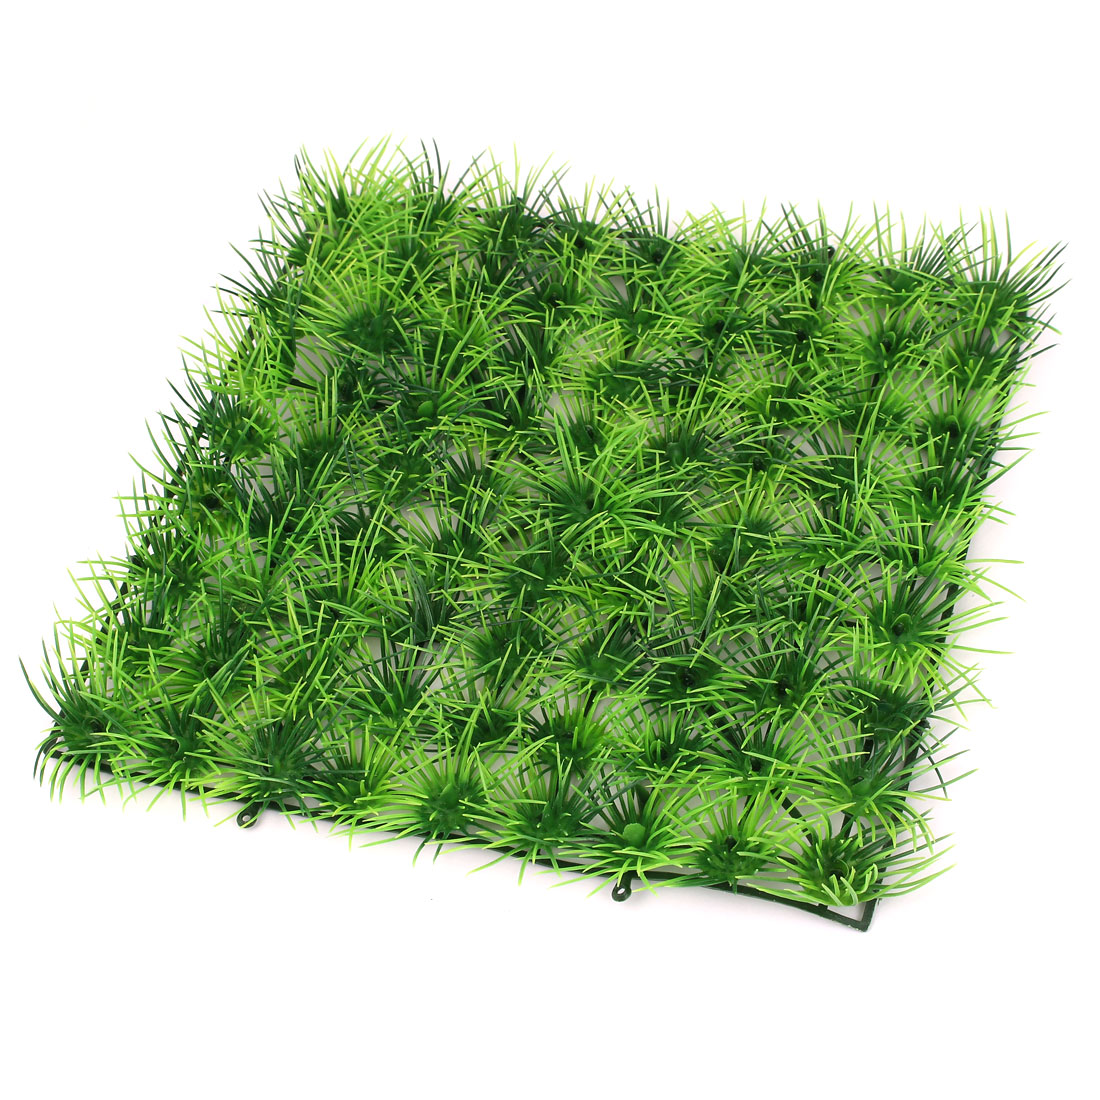 "Aquarium Landscaping Green Manmade Aquatic Grass Lawn Plant 9.4"" Length"